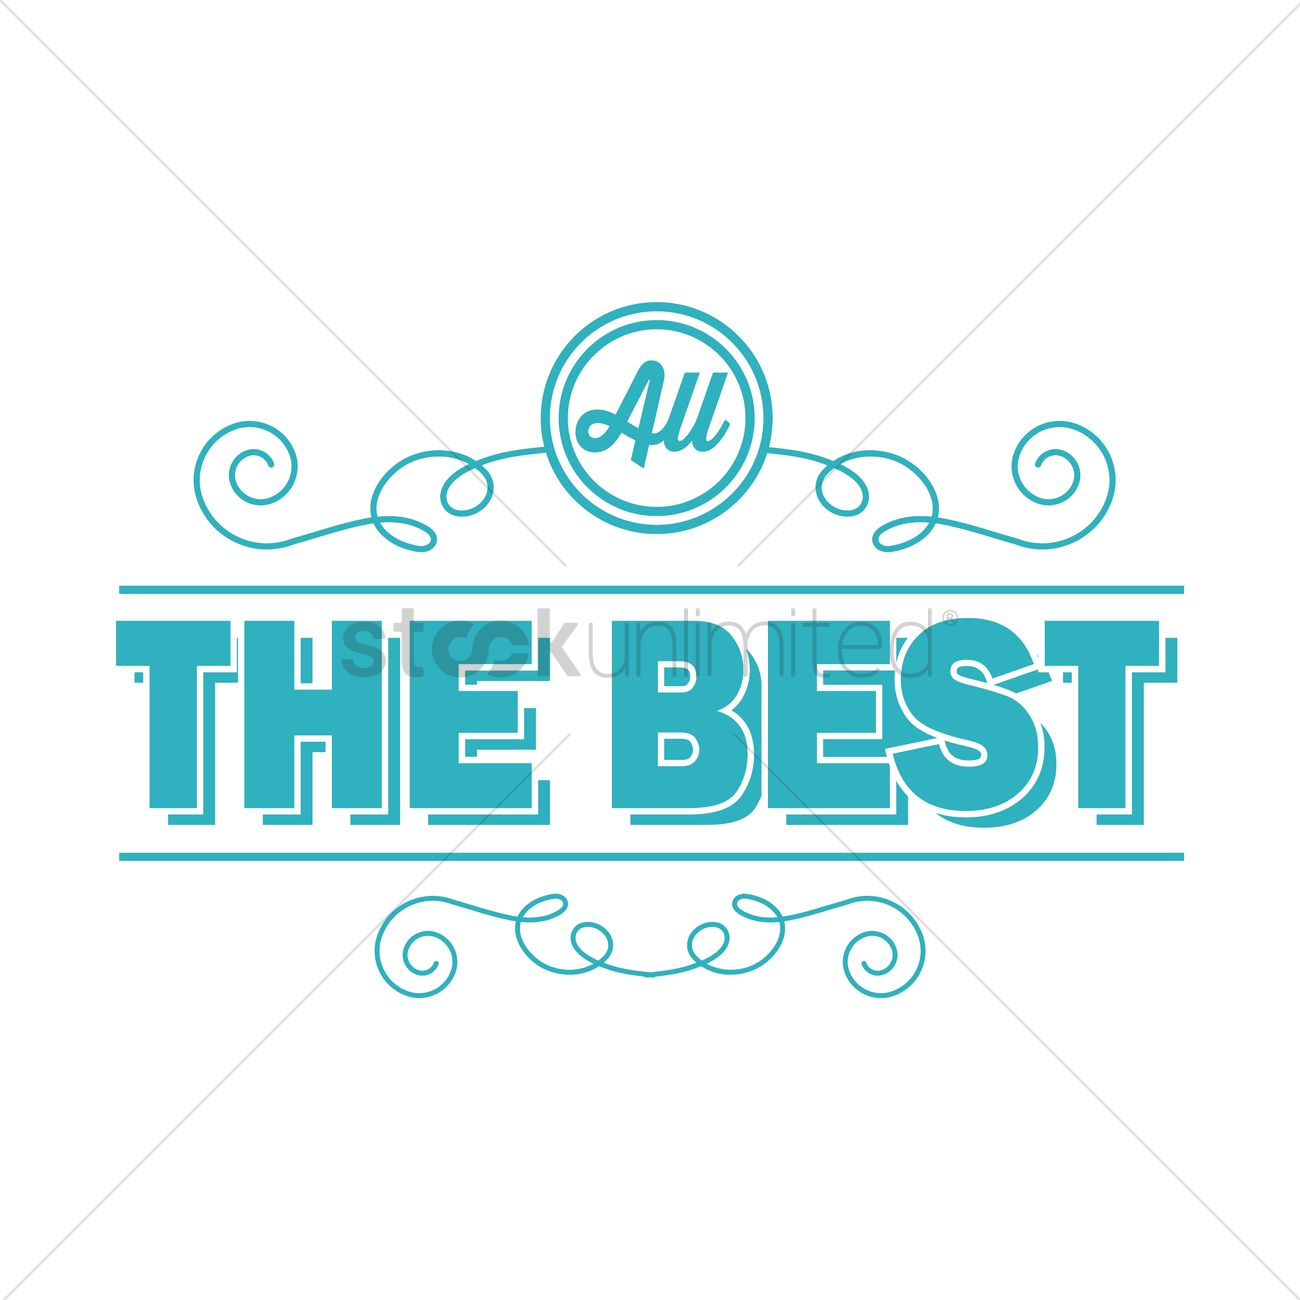 All the best greeting vector image 1811171 stockunlimited all the best greeting vector graphic kristyandbryce Image collections